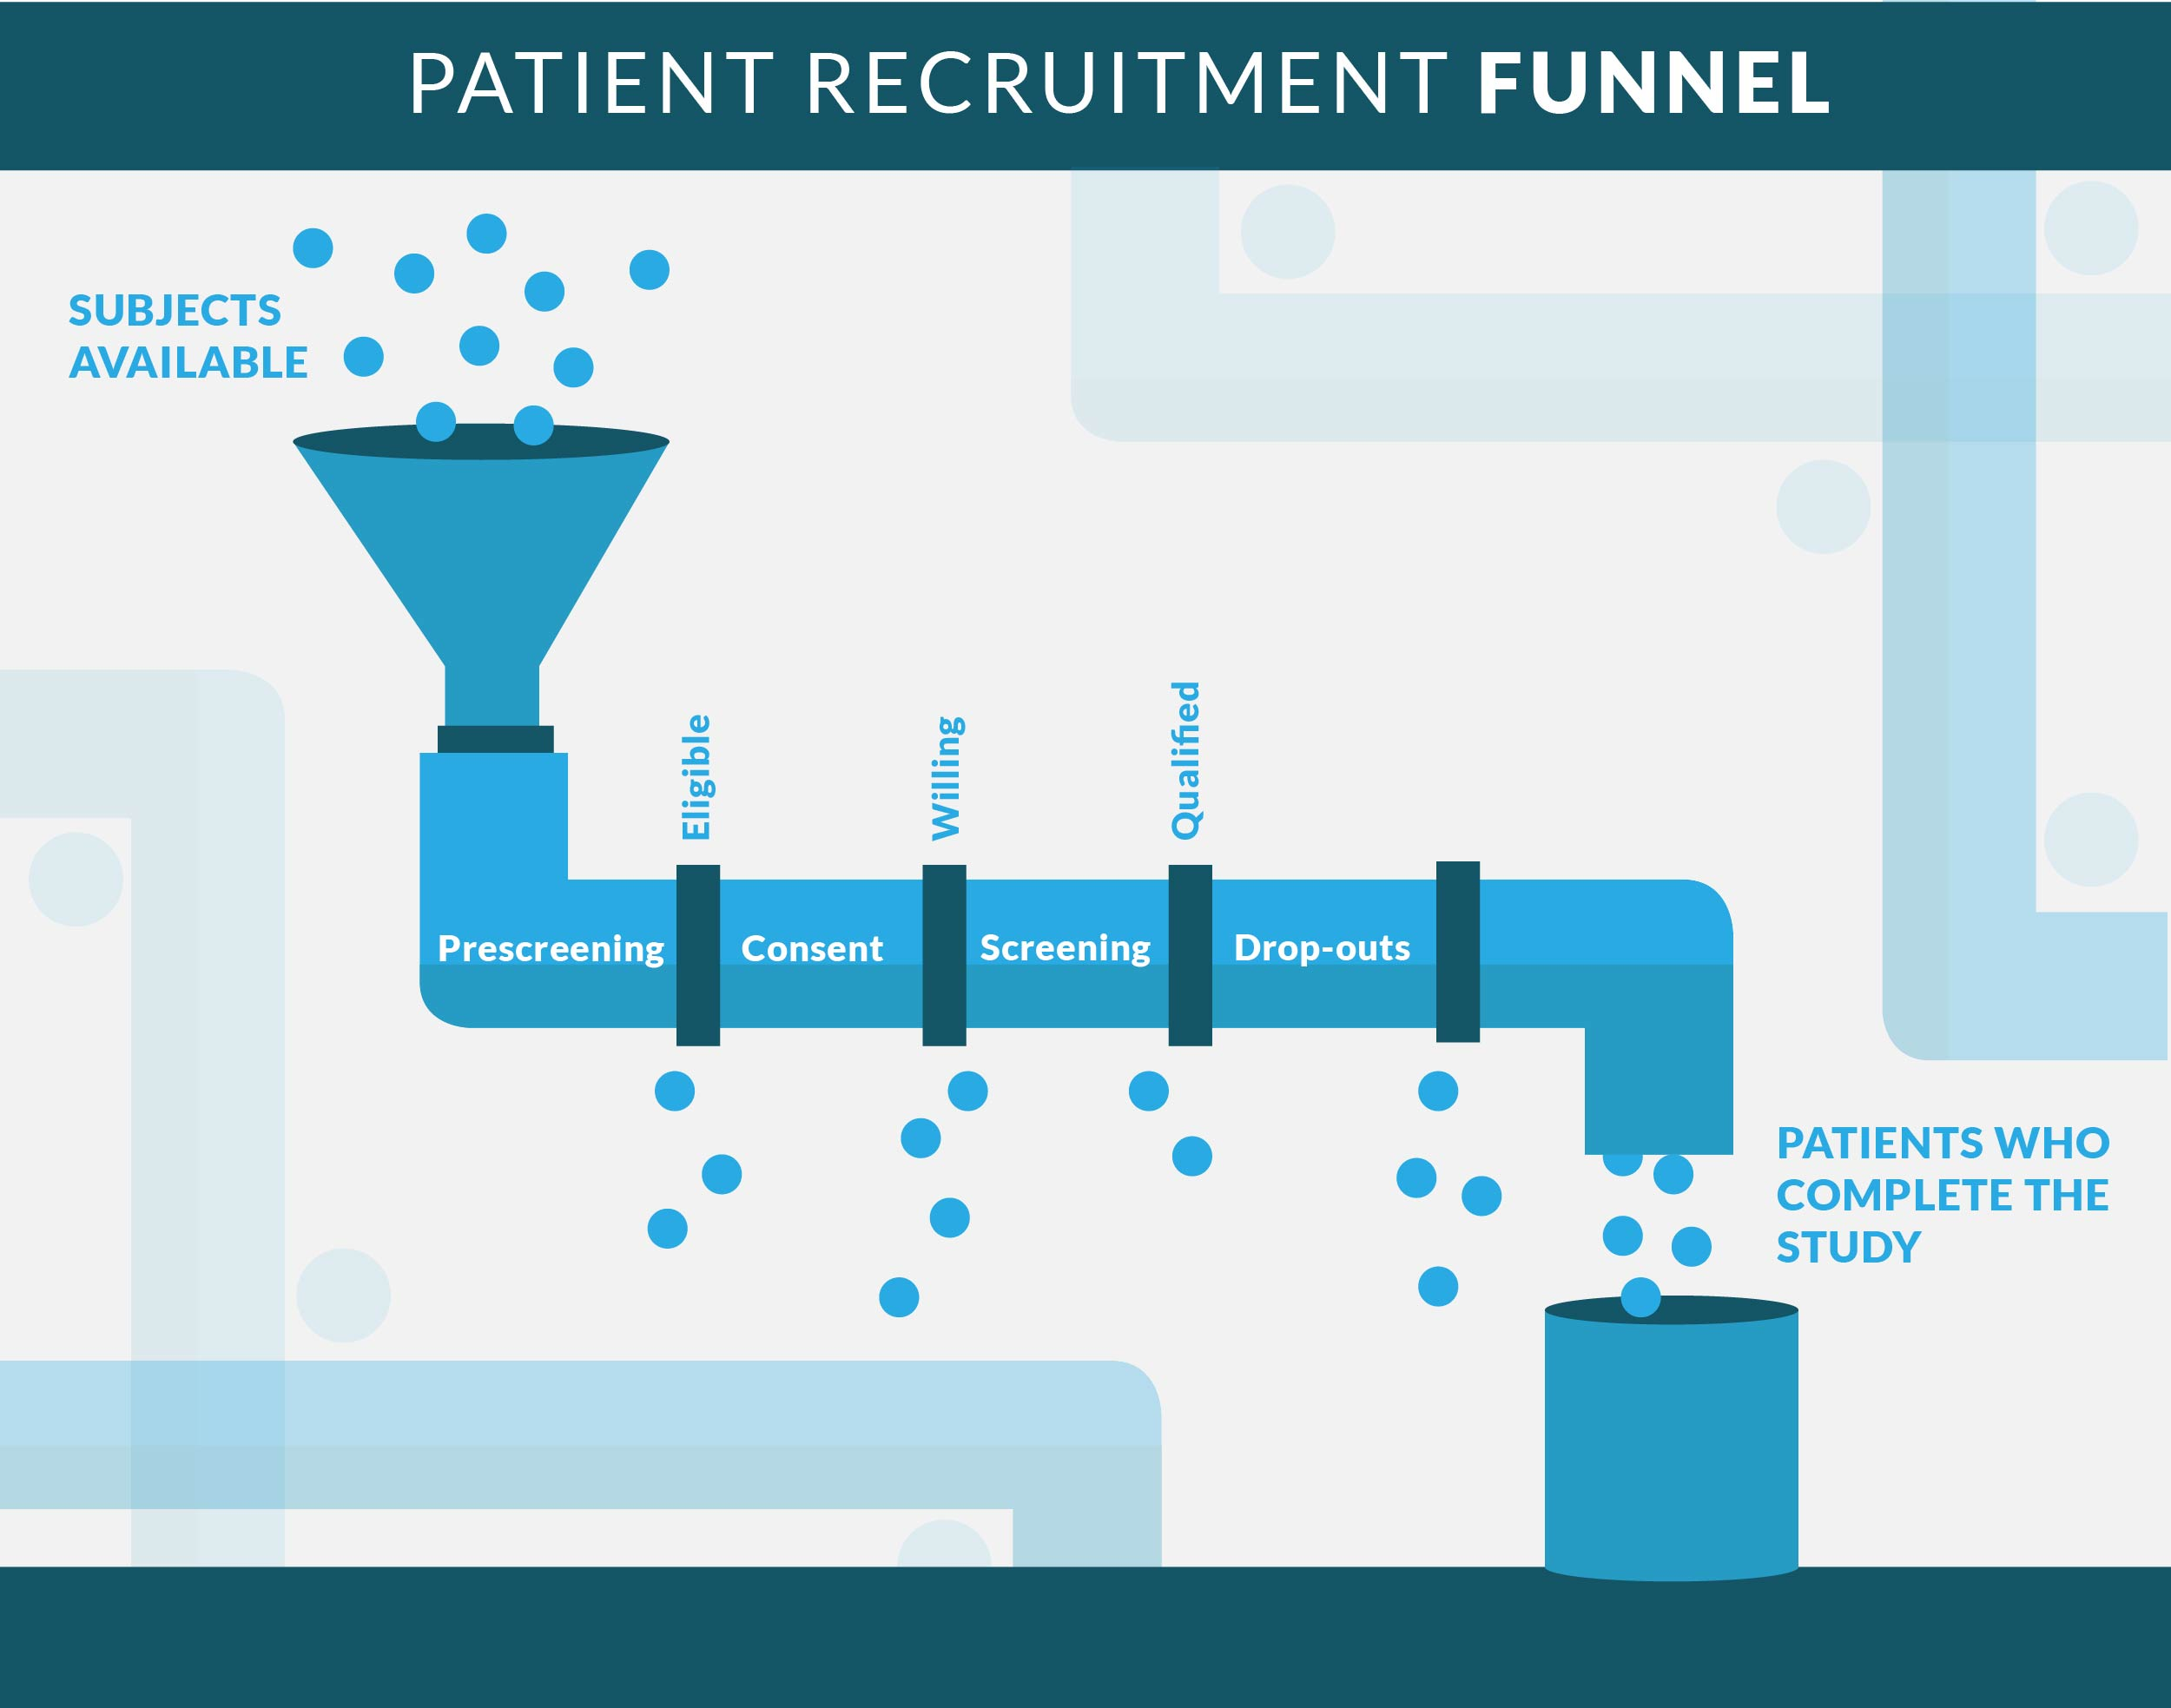 LeakyPipe_PatientRecruitment-01-1.jpg